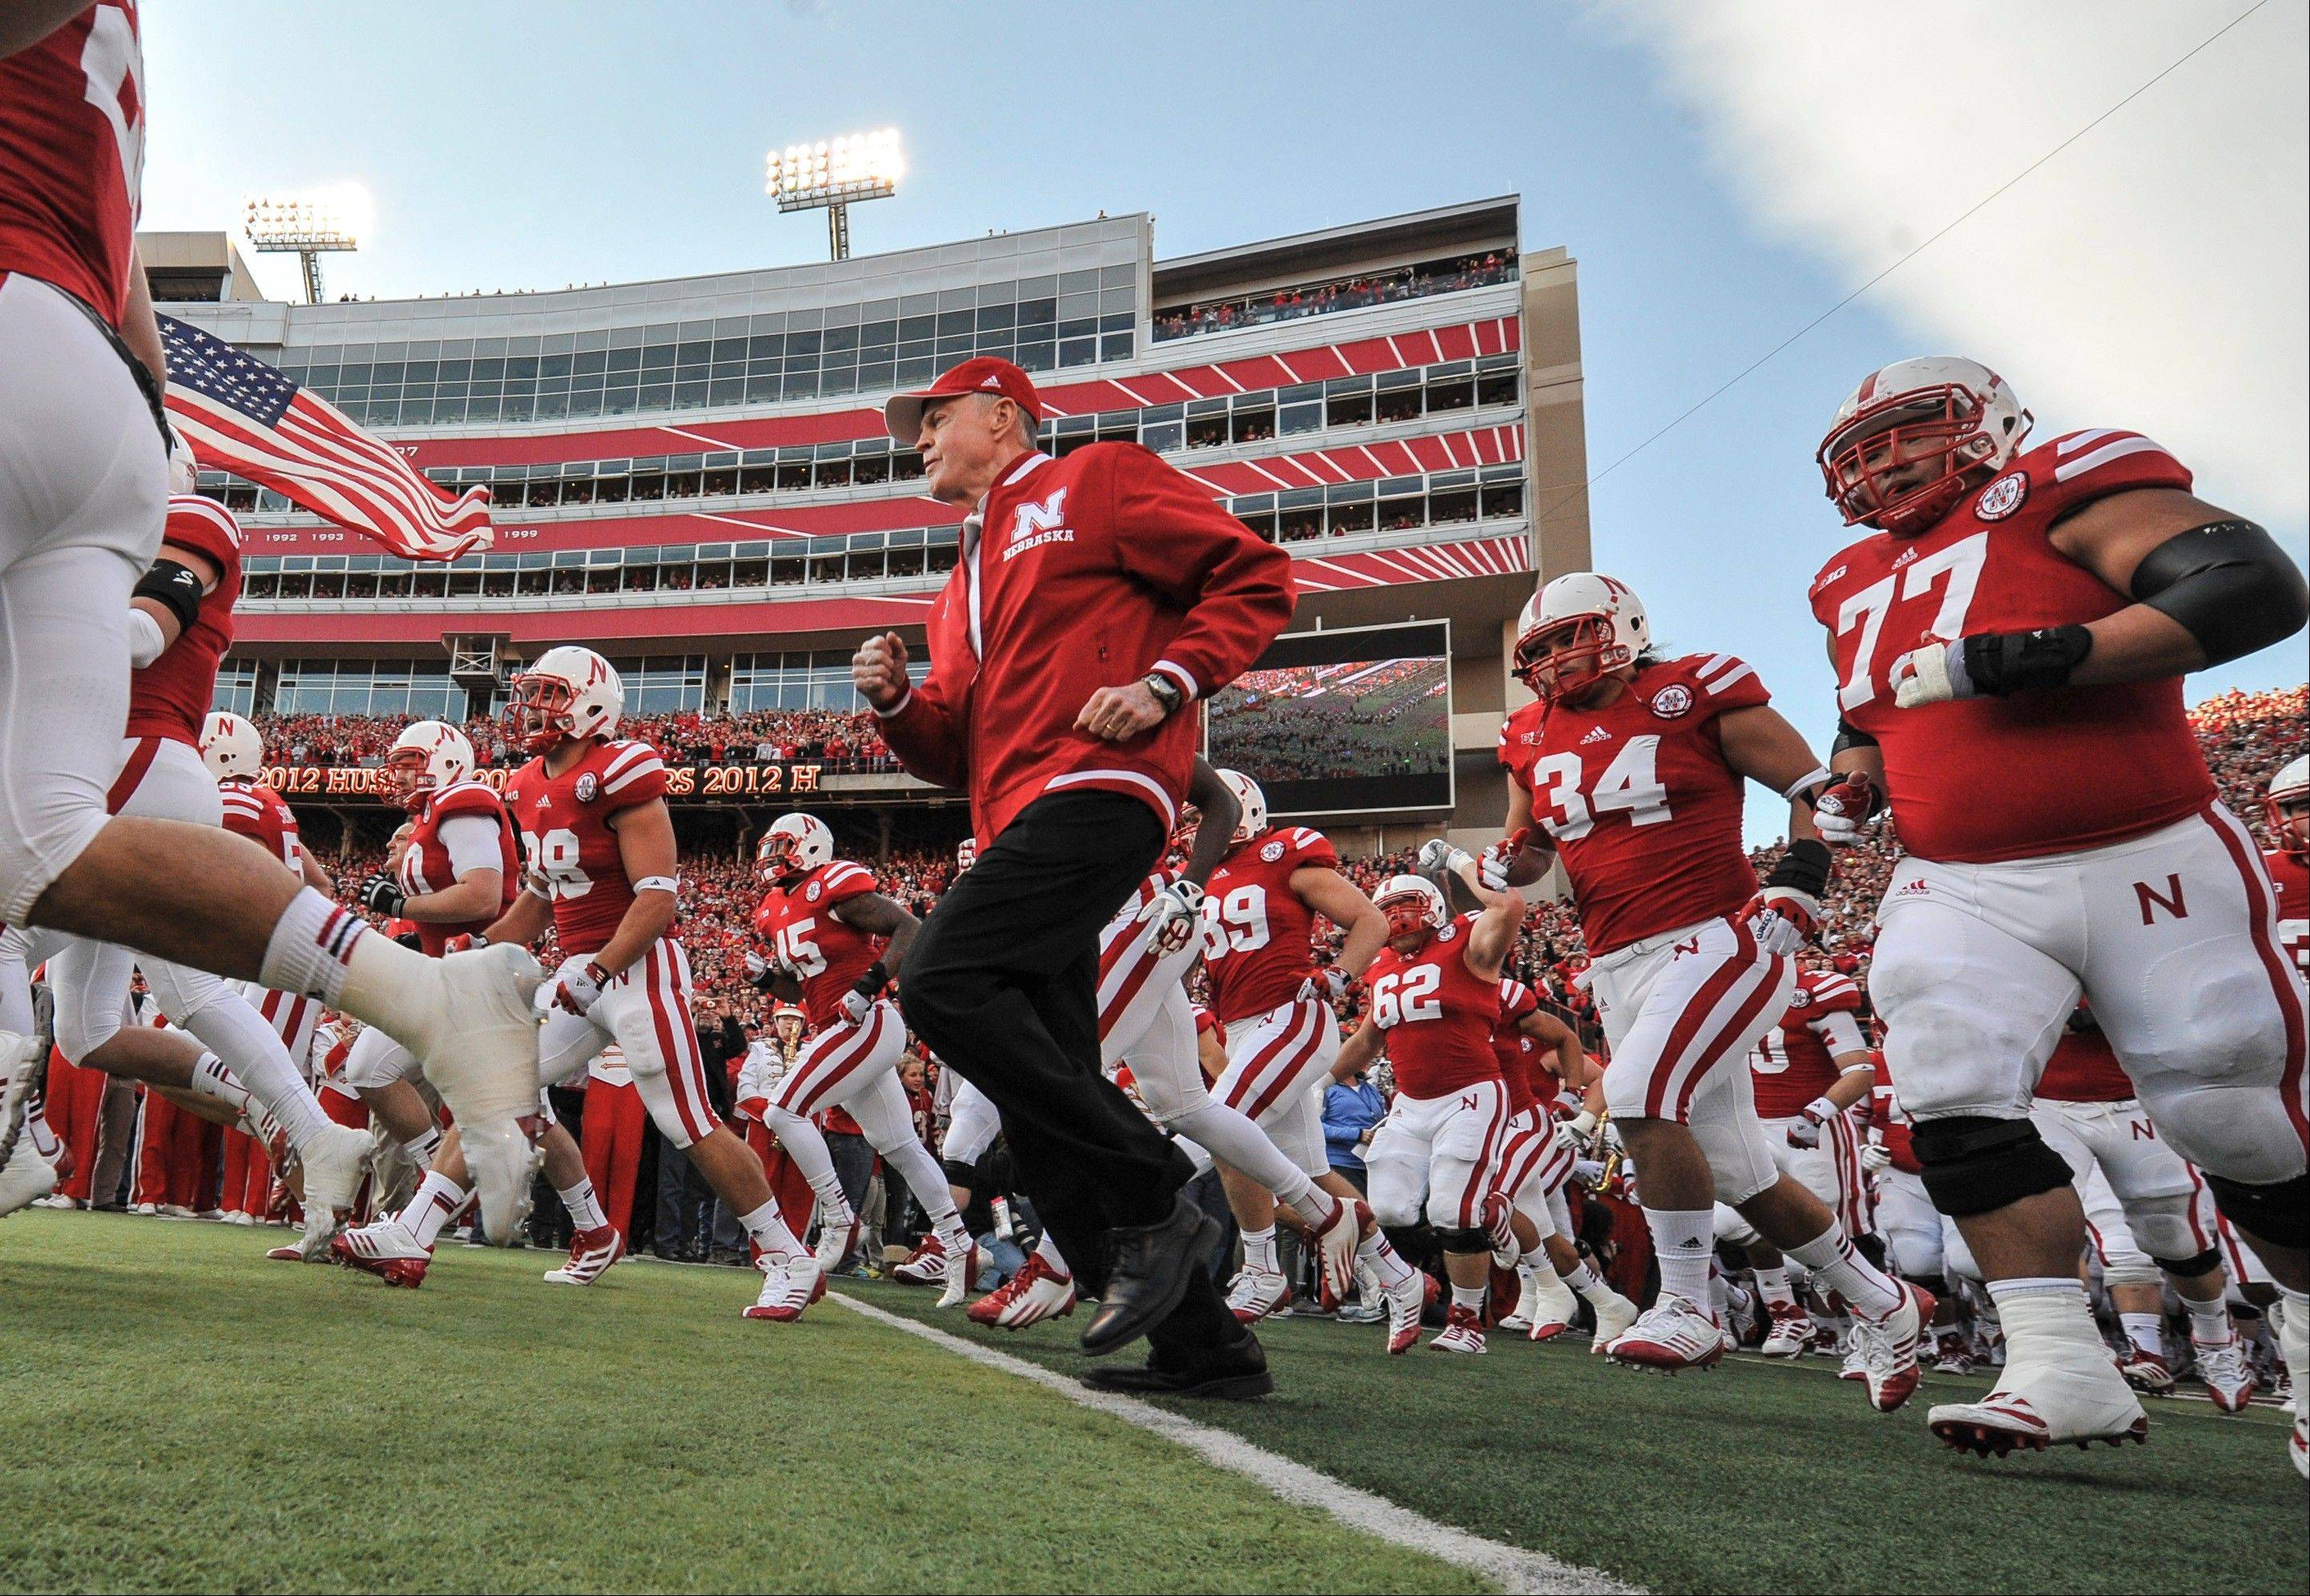 Nebraska�s retiring athletic director and former coach Tom Osborne runs onto the field with players prior to Saturday�s game against Minnesota, in Lincoln, Neb. Osborne was honored for his involvement in 500 Nebraska football games.